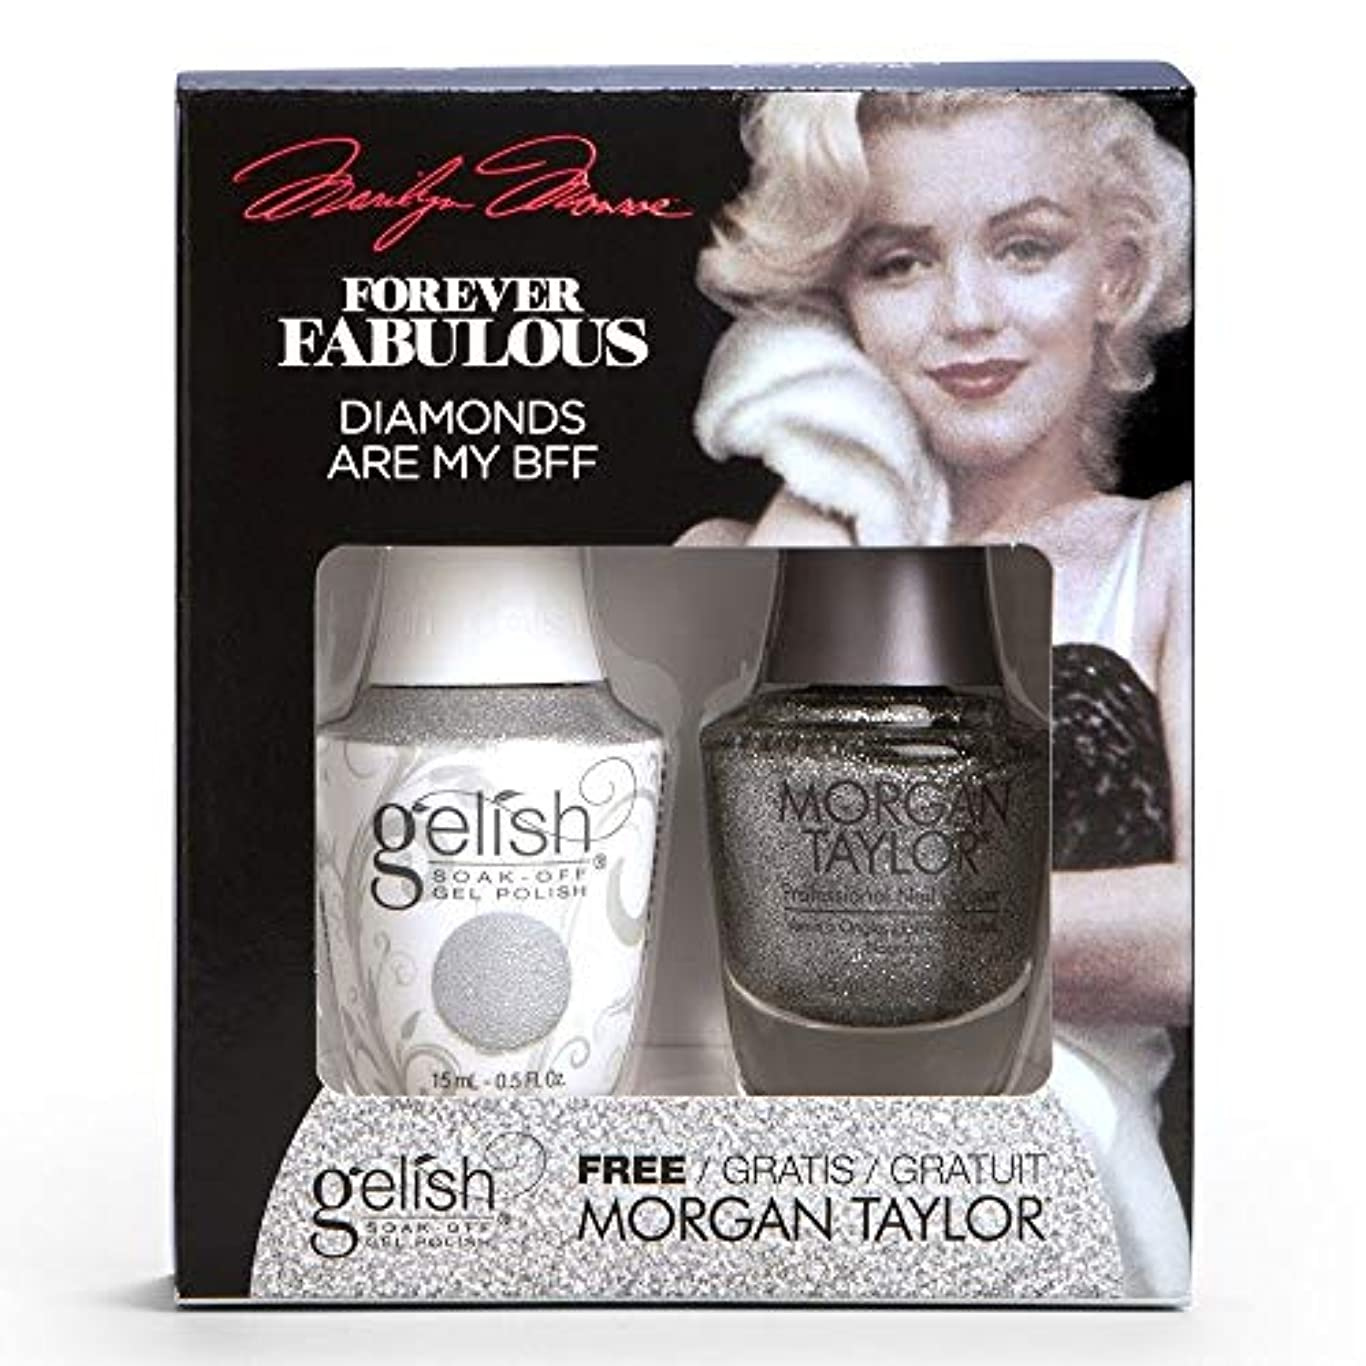 面積形容詞顧問Harmony Gelish & Morgan Taylor - Two Of A Kind - Forever Fabulous Marilyn Monroe - Diamonds Are My BFF - 15 mL...